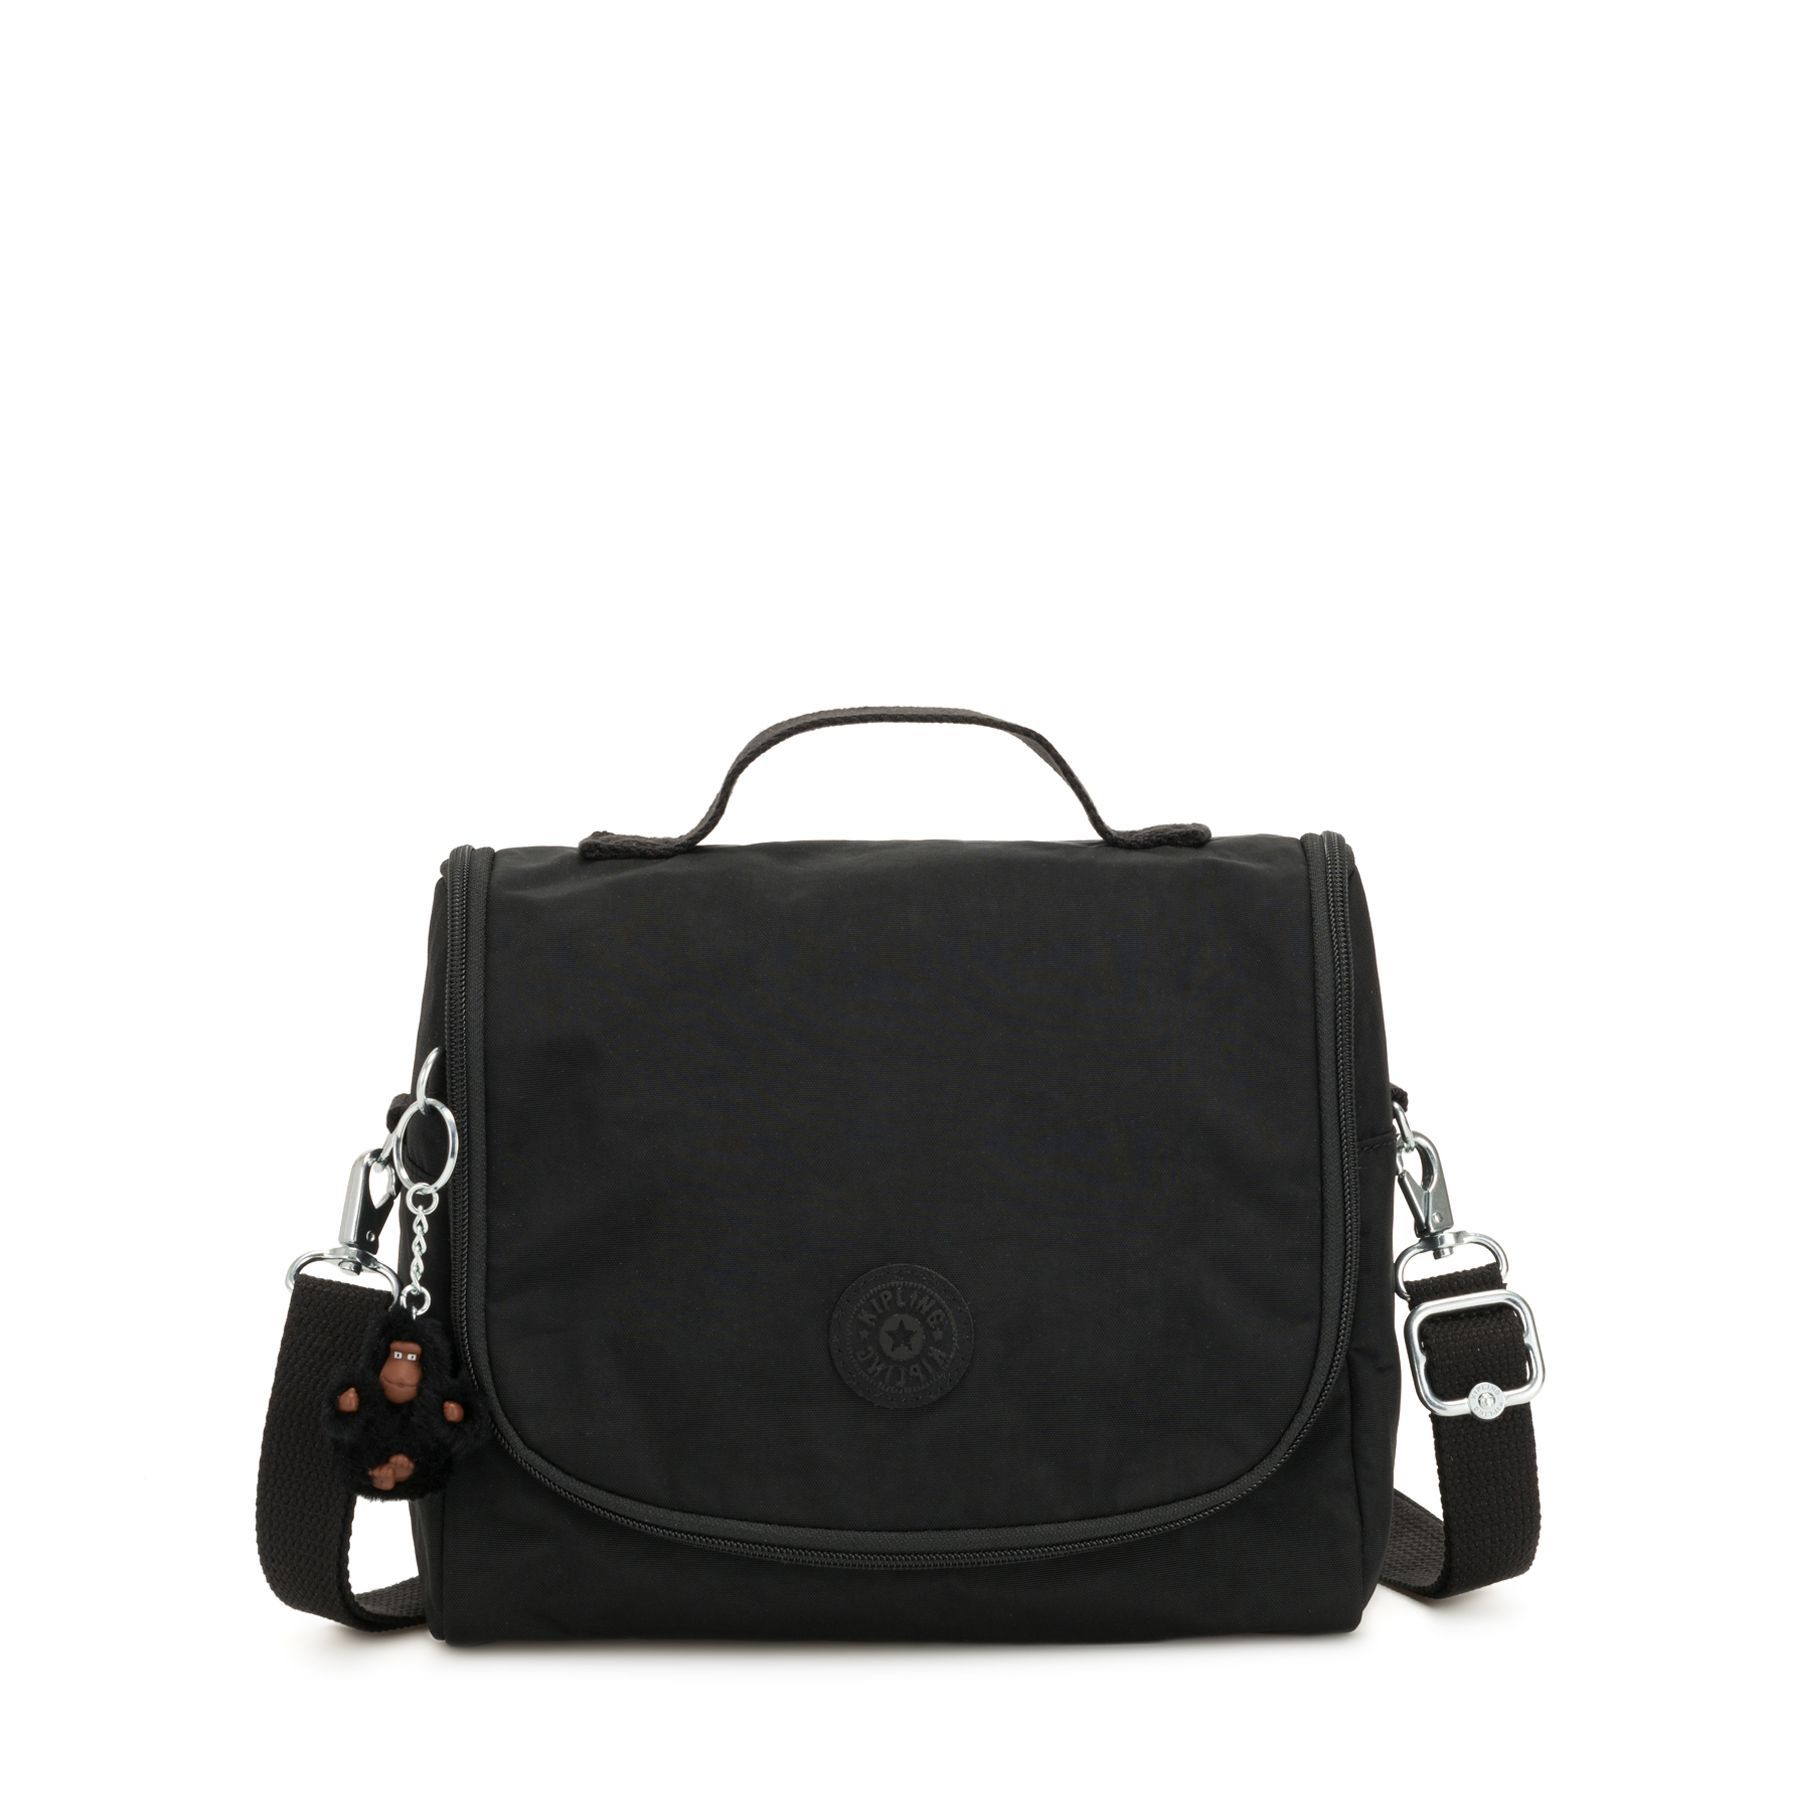 Lancheira New Kichirou Kipling  True Black